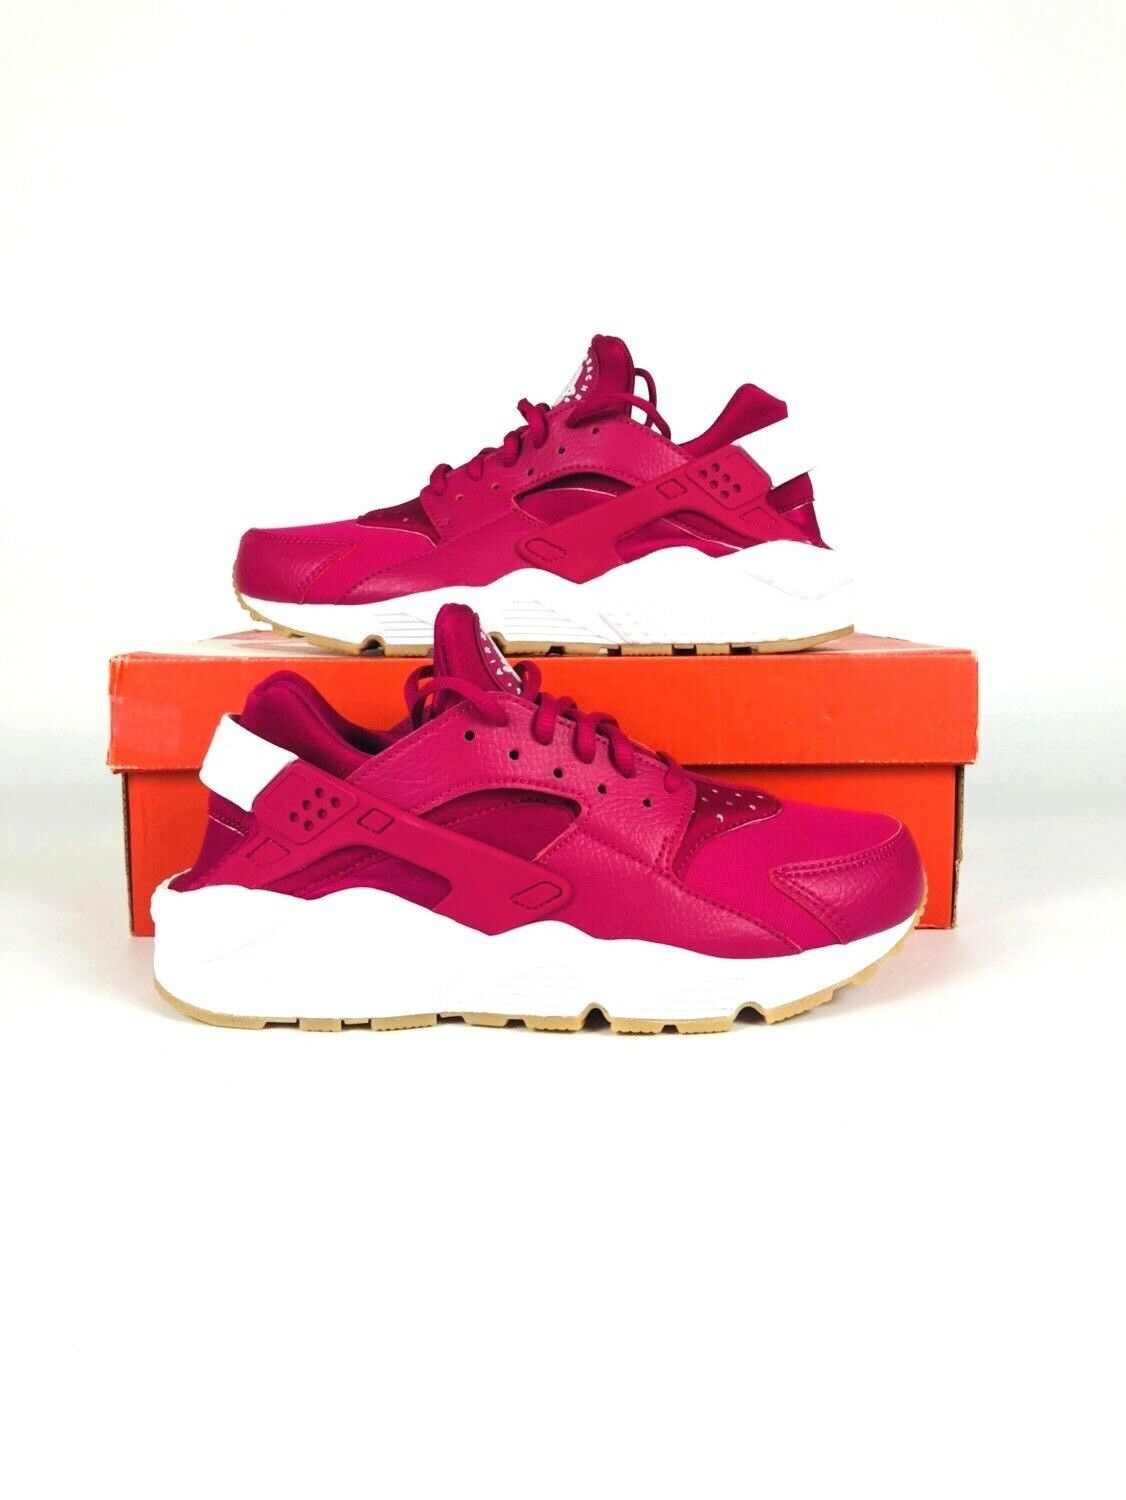 New Nike Women's Air Huarache Run Shoes 634835-606  Sport Fuchsia//White-Gum